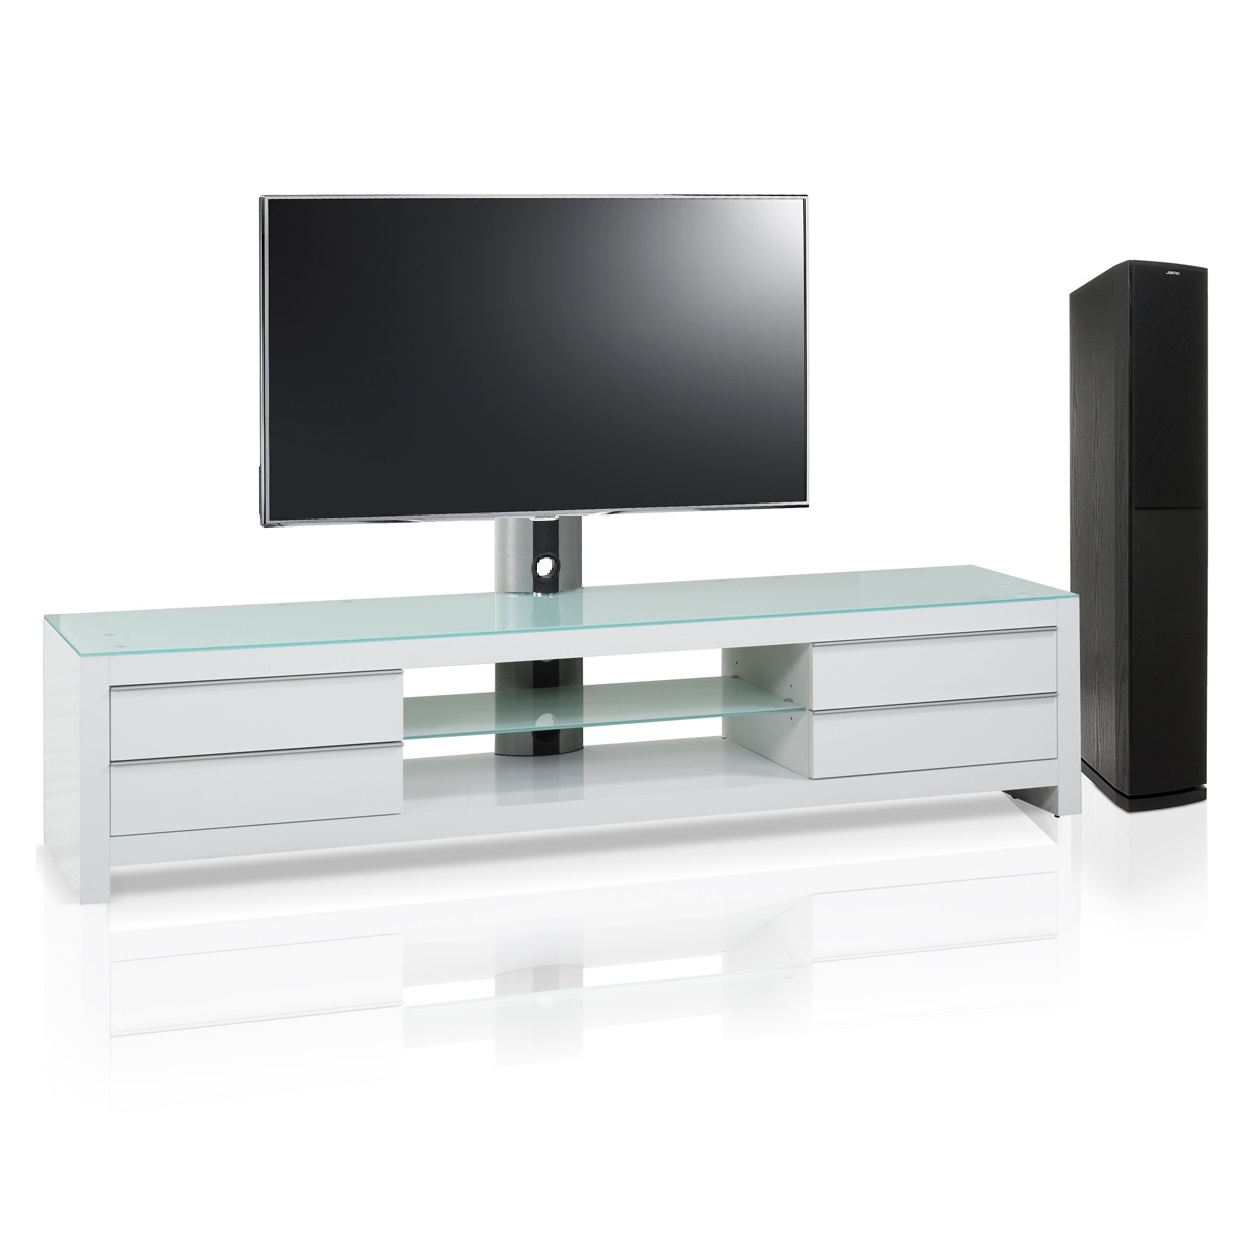 meuble tv avec support id es de d coration int rieure french decor. Black Bedroom Furniture Sets. Home Design Ideas